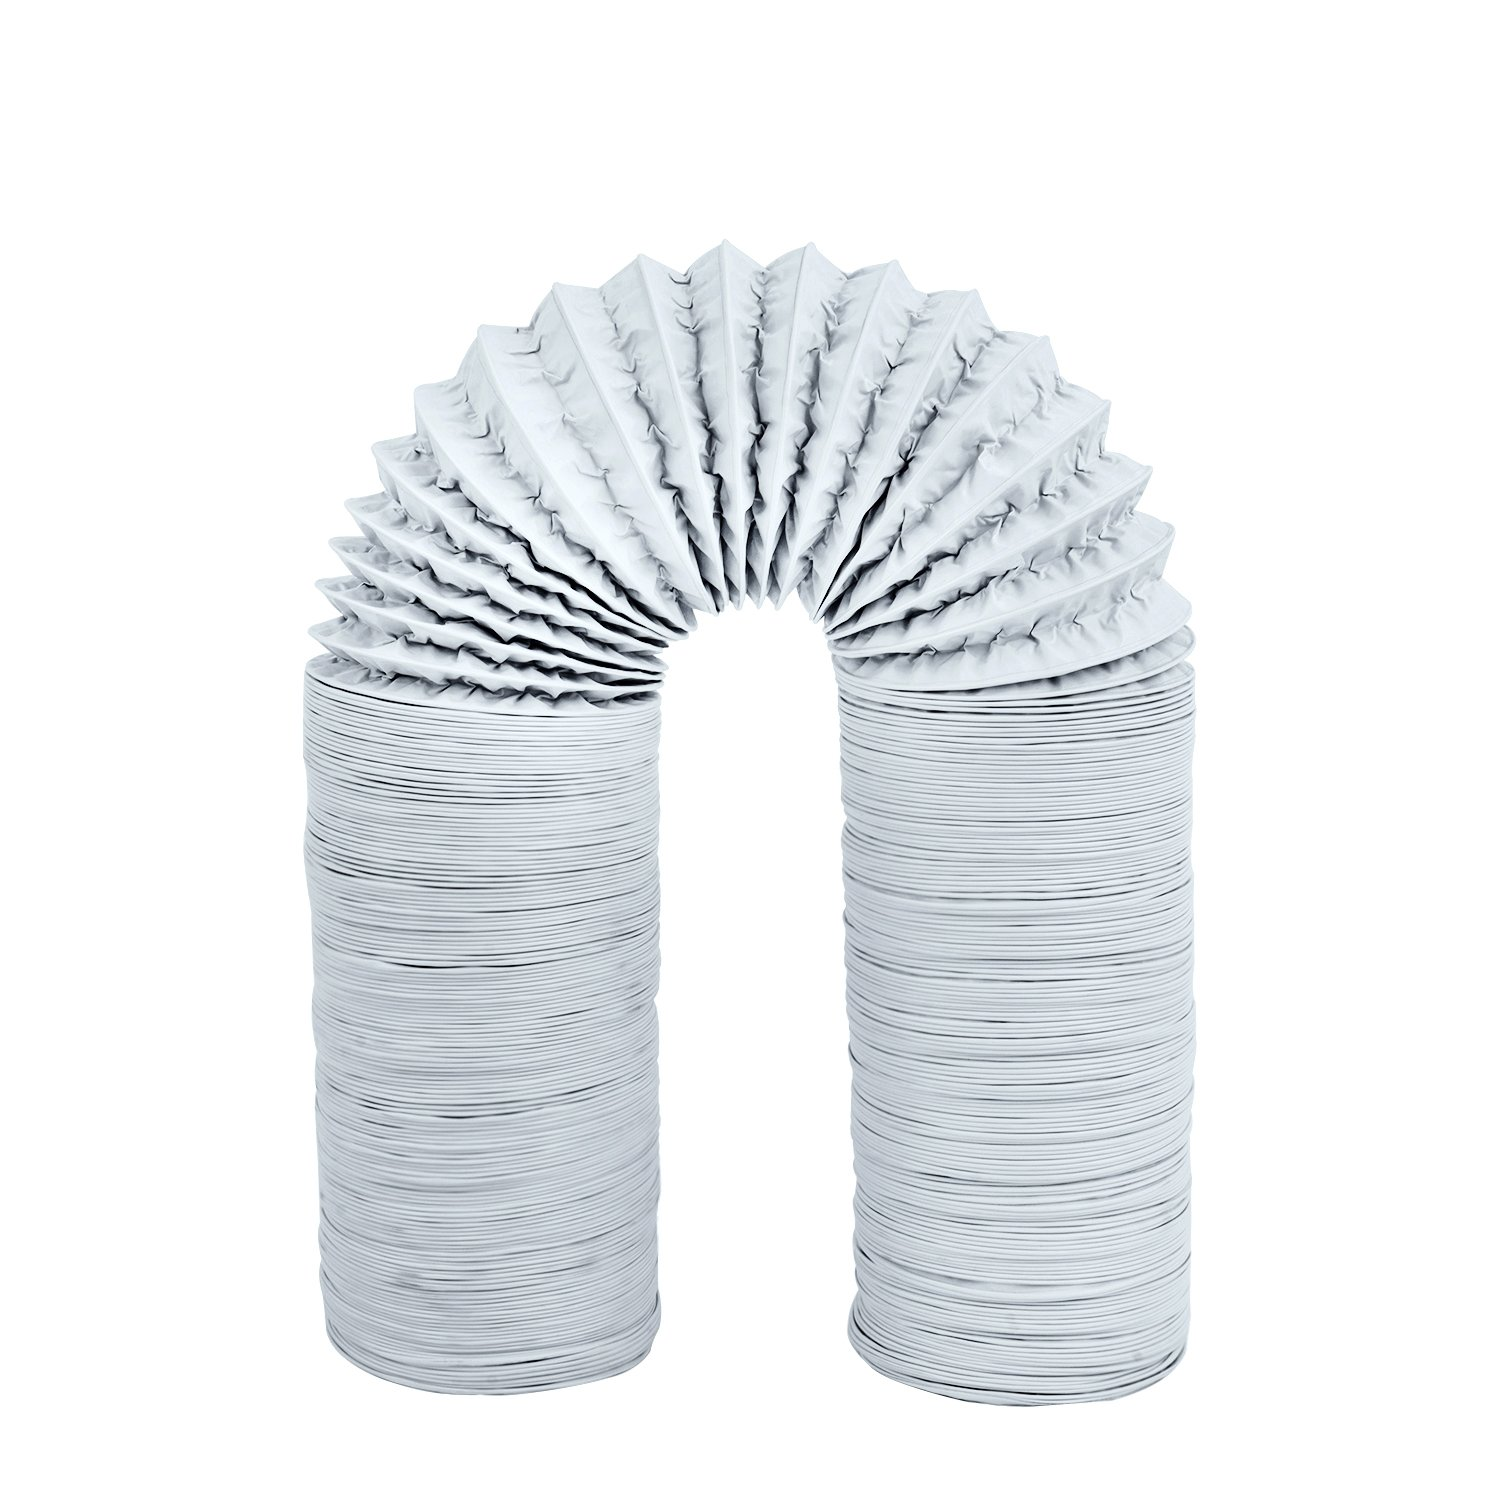 Hon&Guan 5 inch Air Duct - 16 FT Long, Flexible Ducting HVAC Ventilation Air Hose For Grow Tents, Dryer Rooms,Kitchen